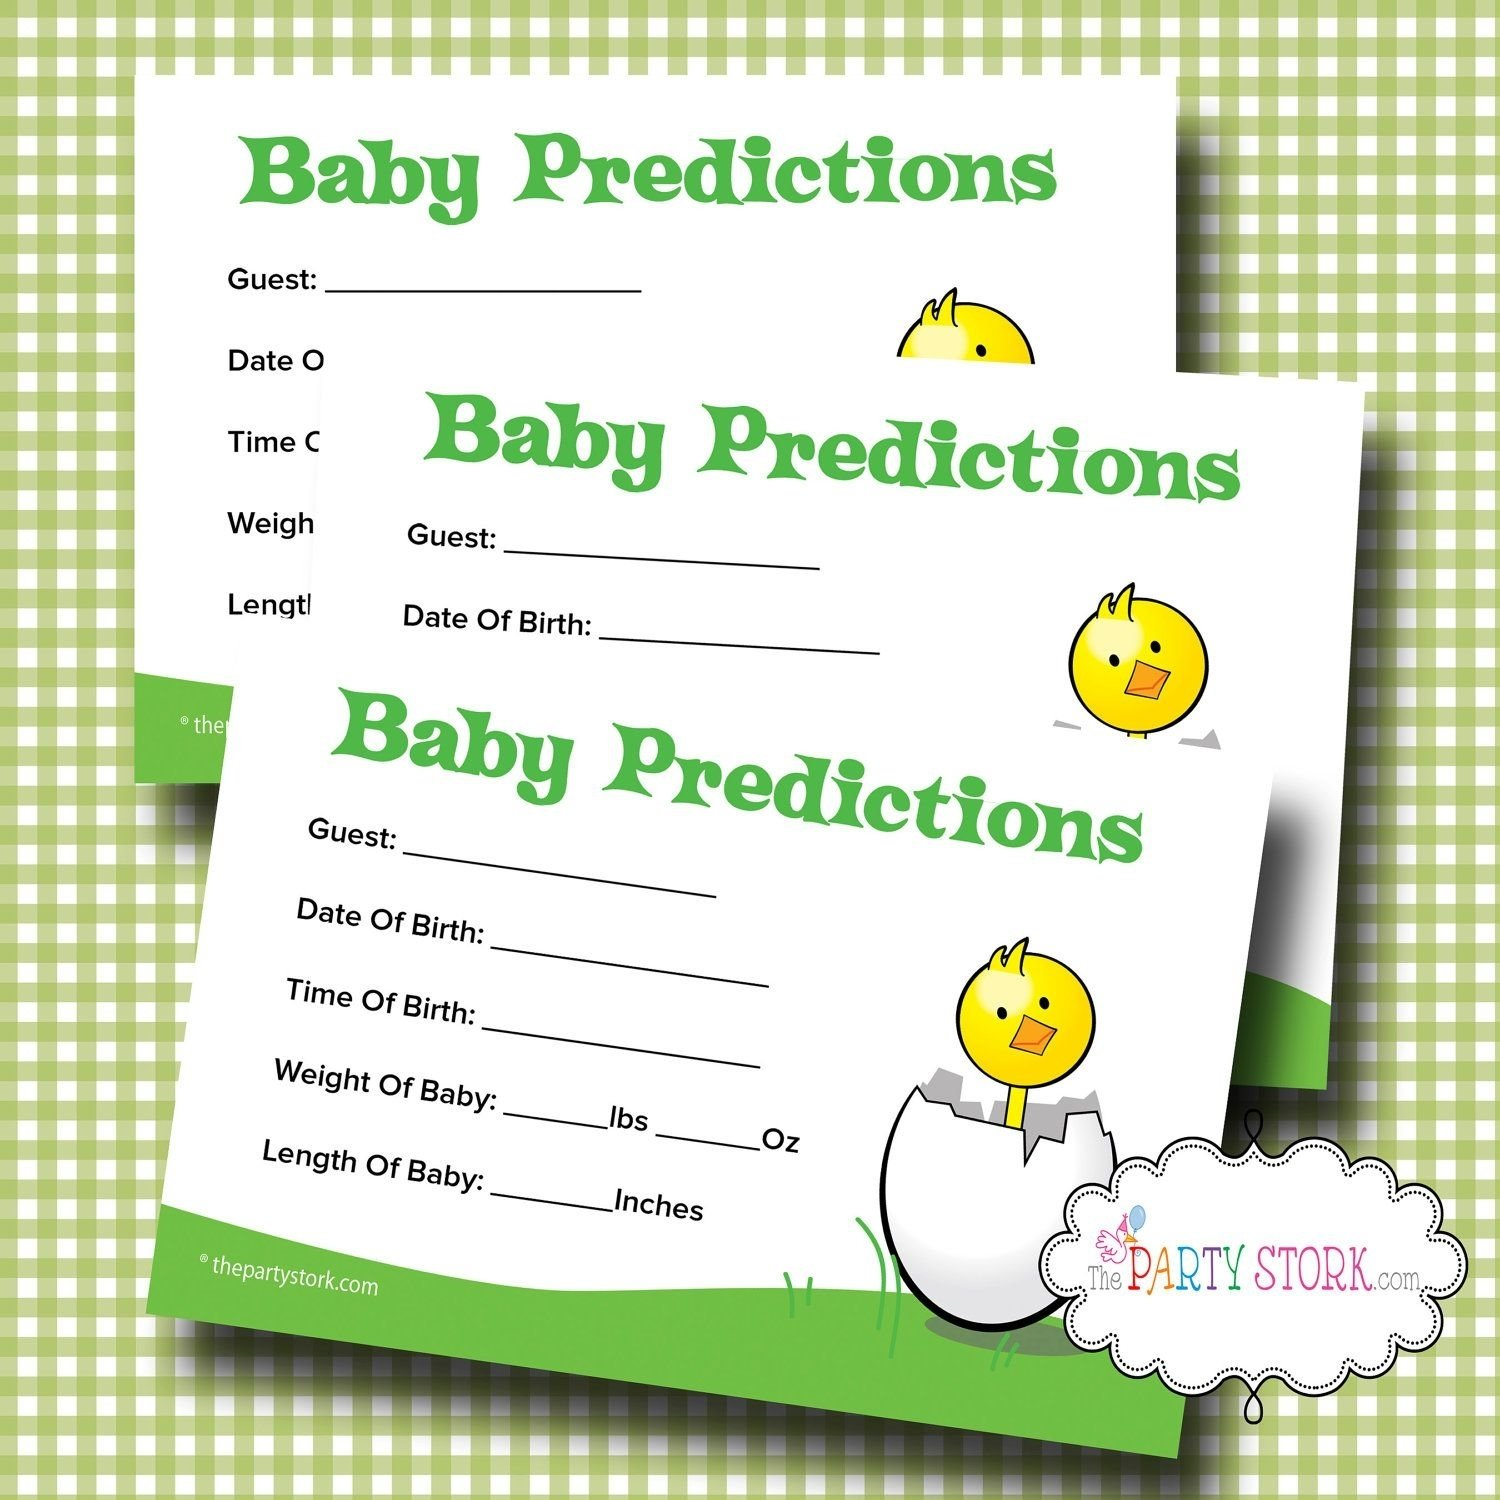 10 Perfect Boy Baby Shower Game Ideas printable baby shower prediction game baby shower predictions card 4 2020